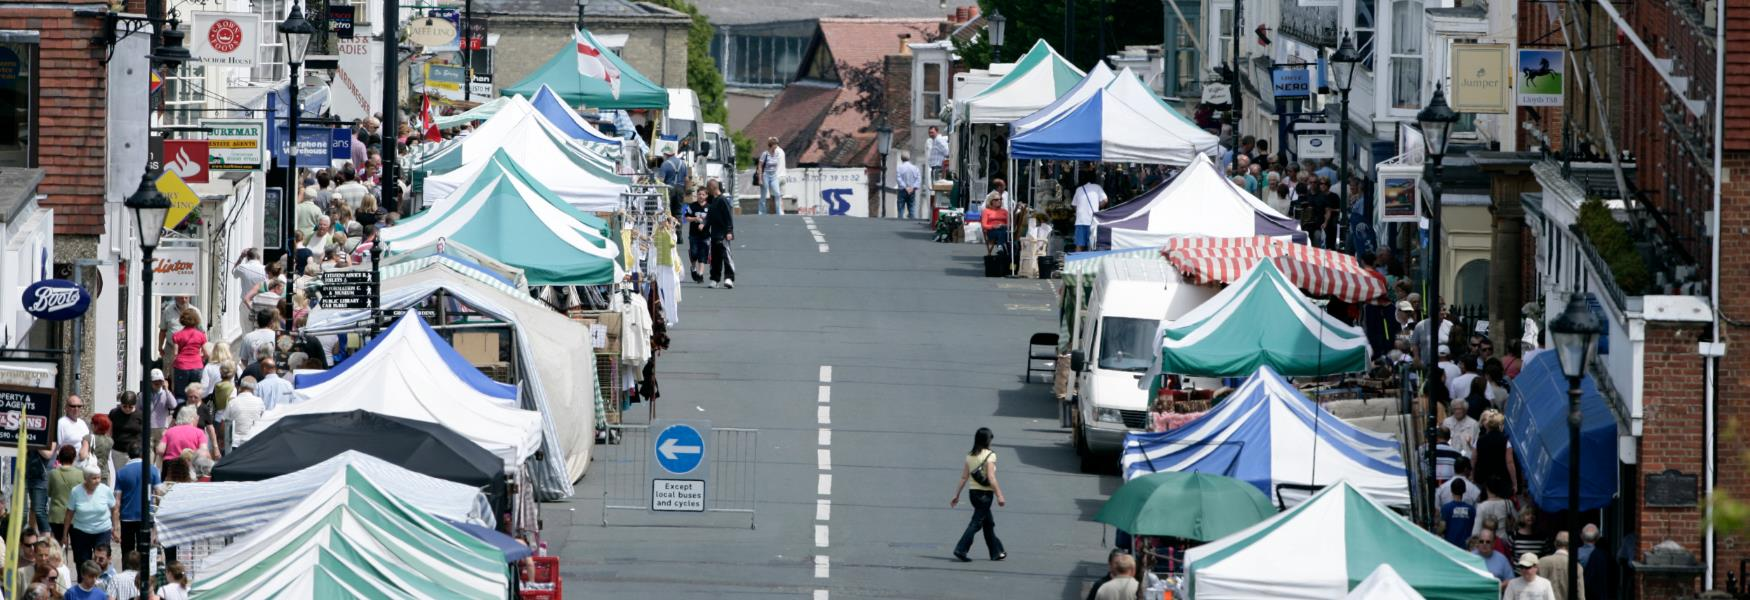 market in lymington high street in the new forest